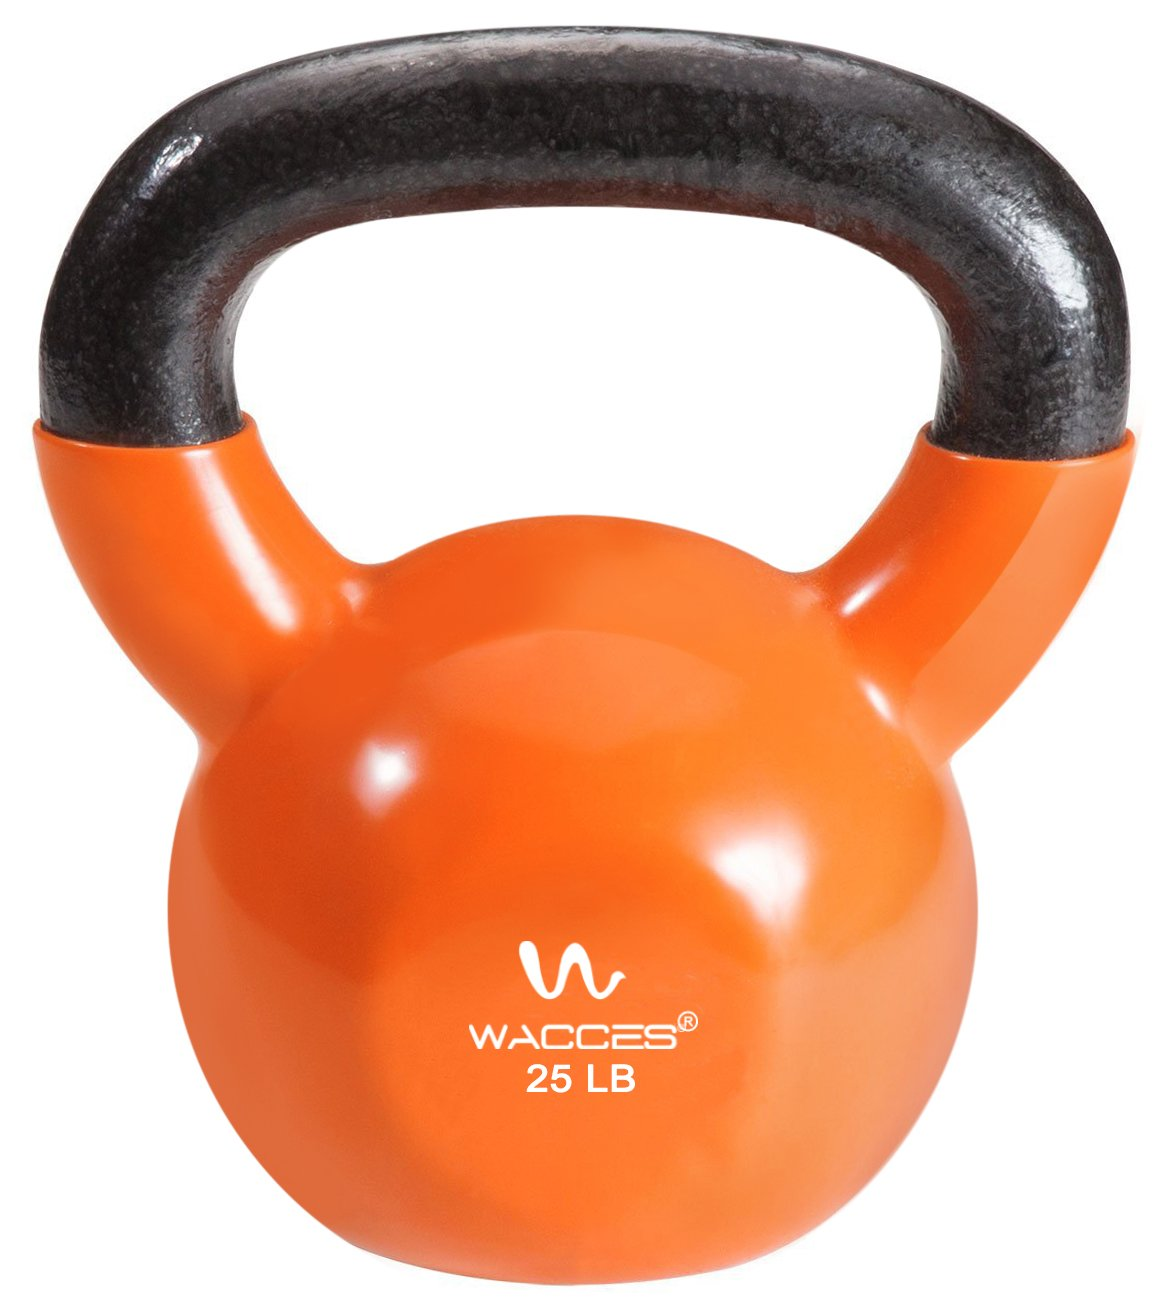 Wacces Single Vinyl Dipped Kettlebell for Croos Training, Home Exercise, Workout